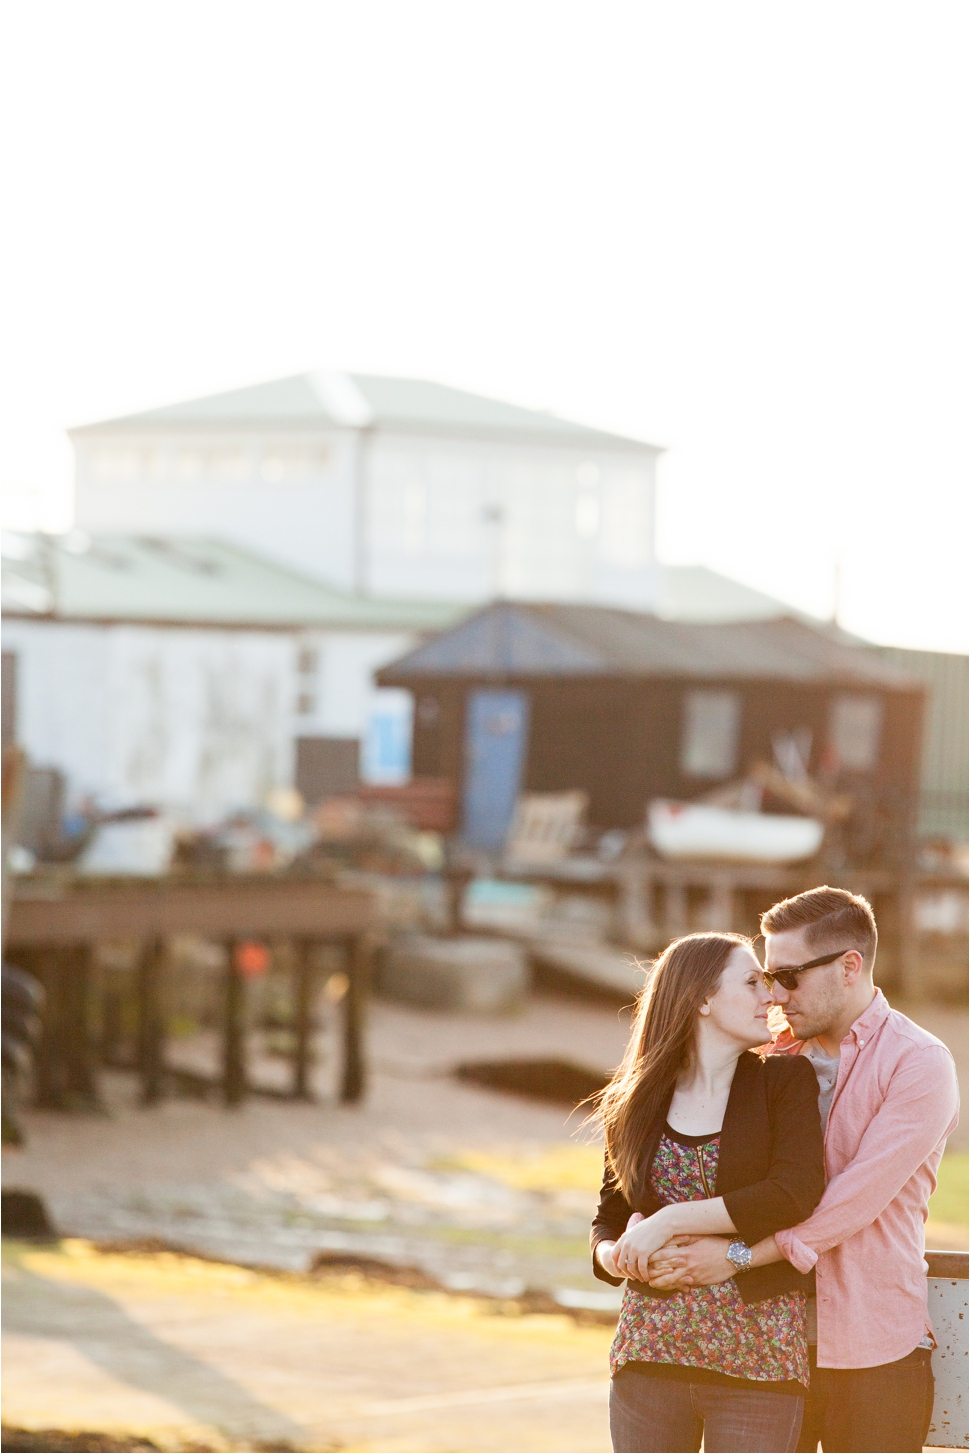 A Sunset Beachside Engagement Shoot in Old Felixstowe, Suffolk / www.rossdeanphotography.com